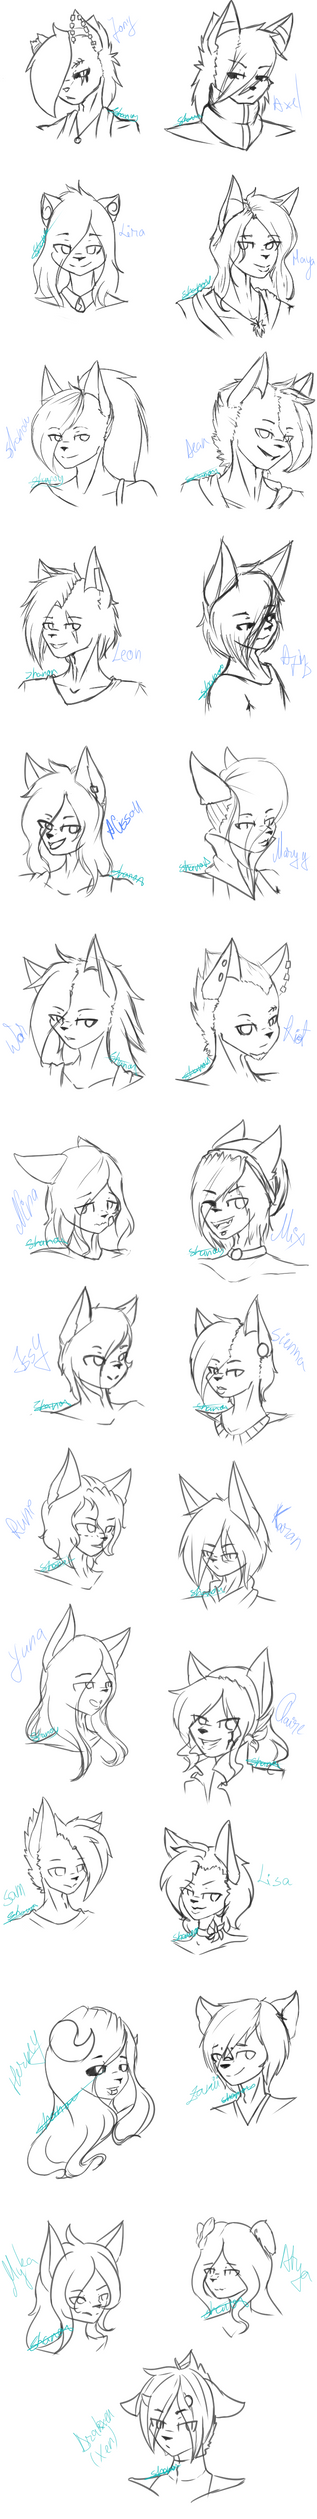 .:New Style:. Headshoot practice by Diamond-Nights